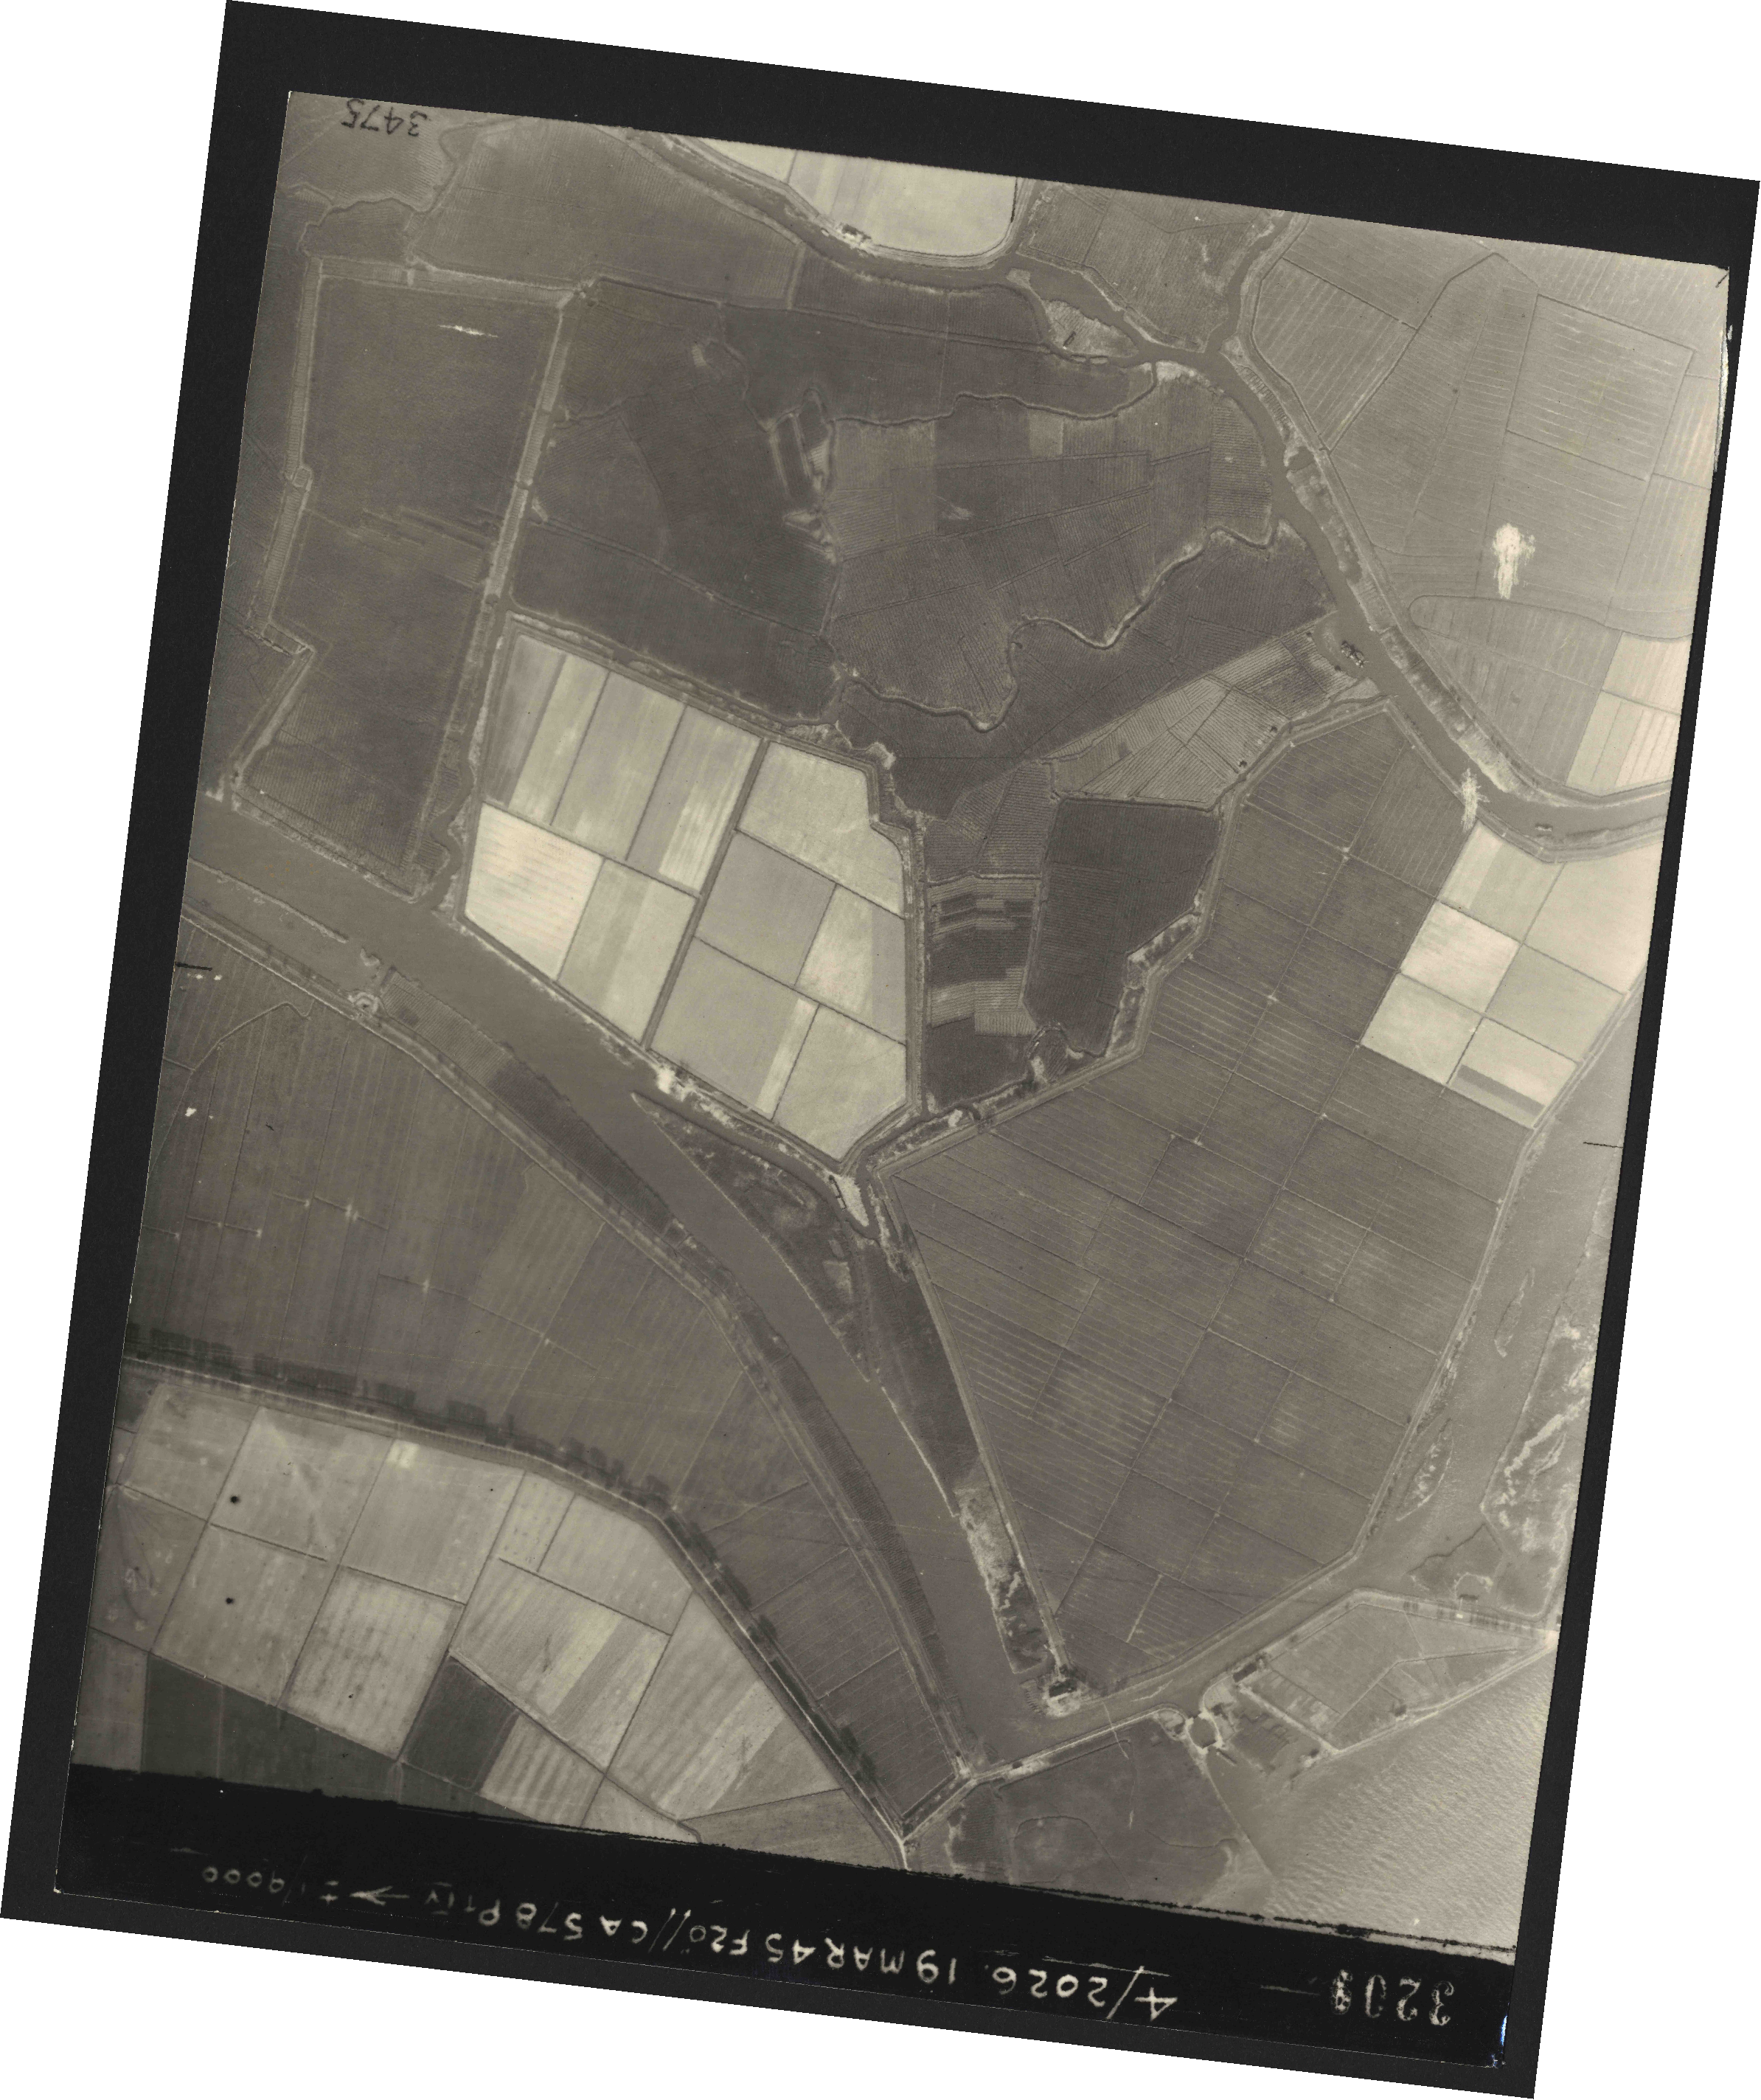 Collection RAF aerial photos 1940-1945 - flight 012, run 08, photo 3209